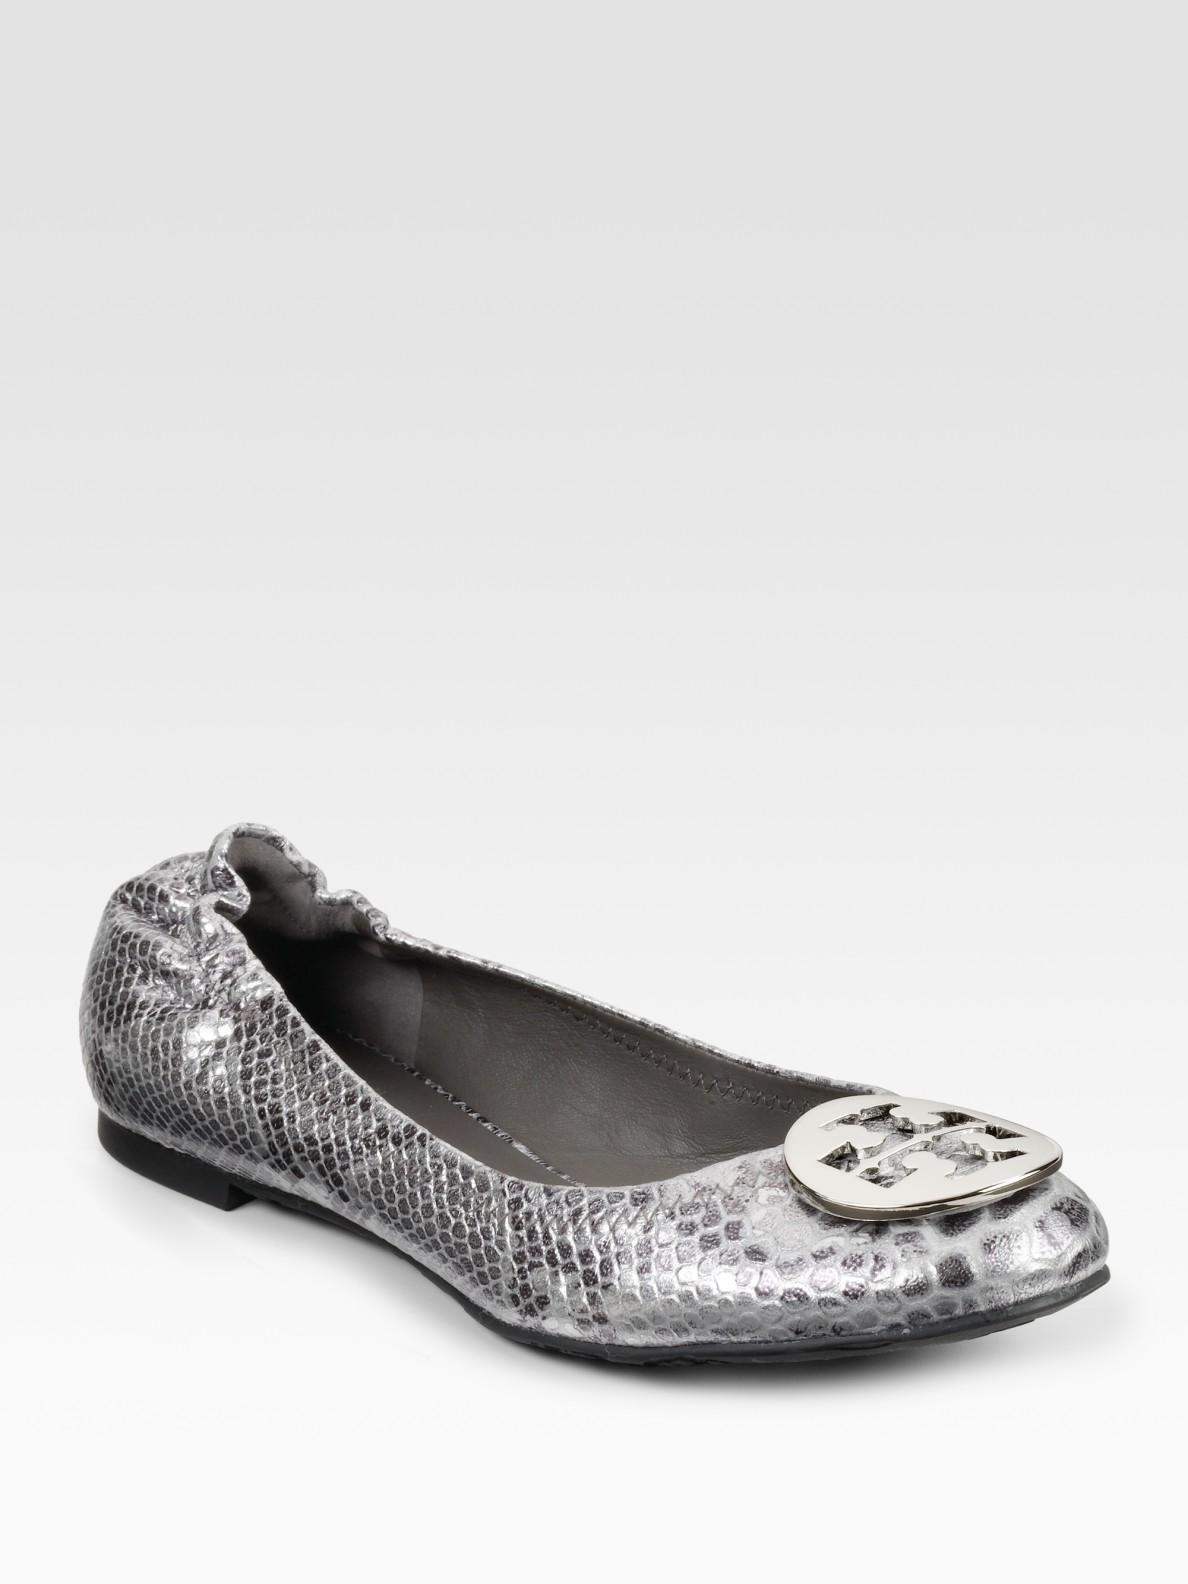 4146513b3 Lyst - Tory Burch Reva Snake-embossed Leather Ballet Flats in Metallic